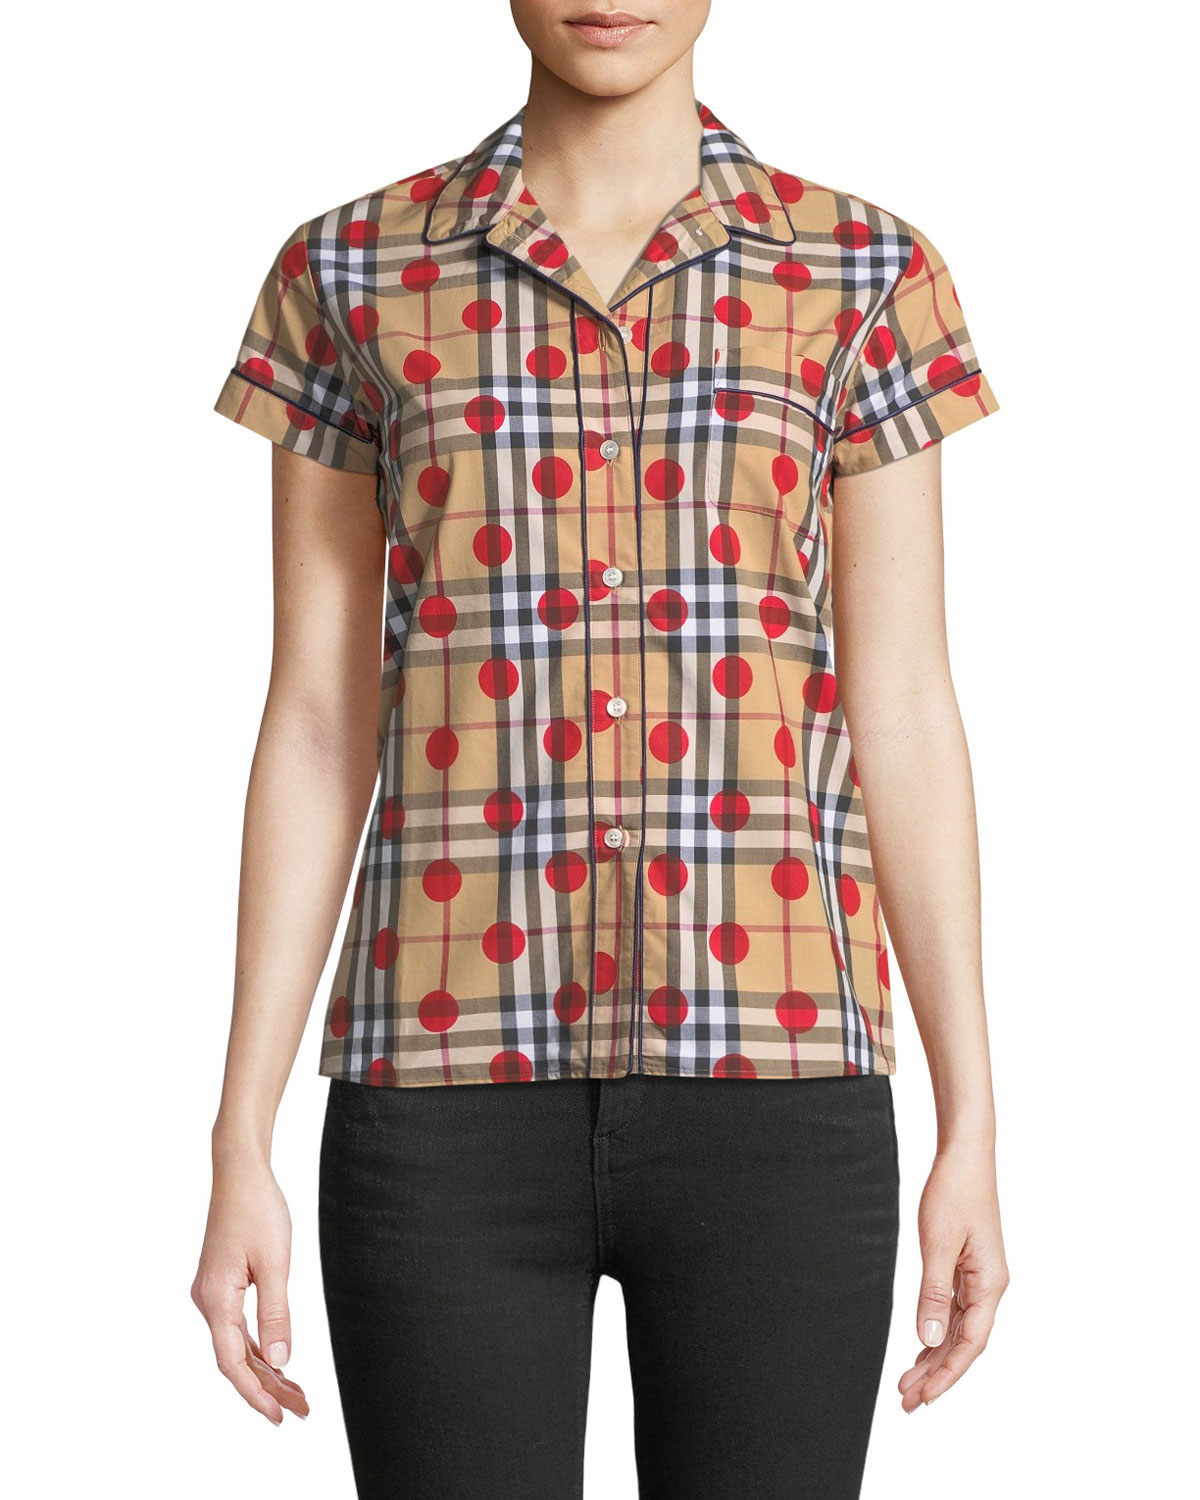 Vireo Dot-Check Shirt